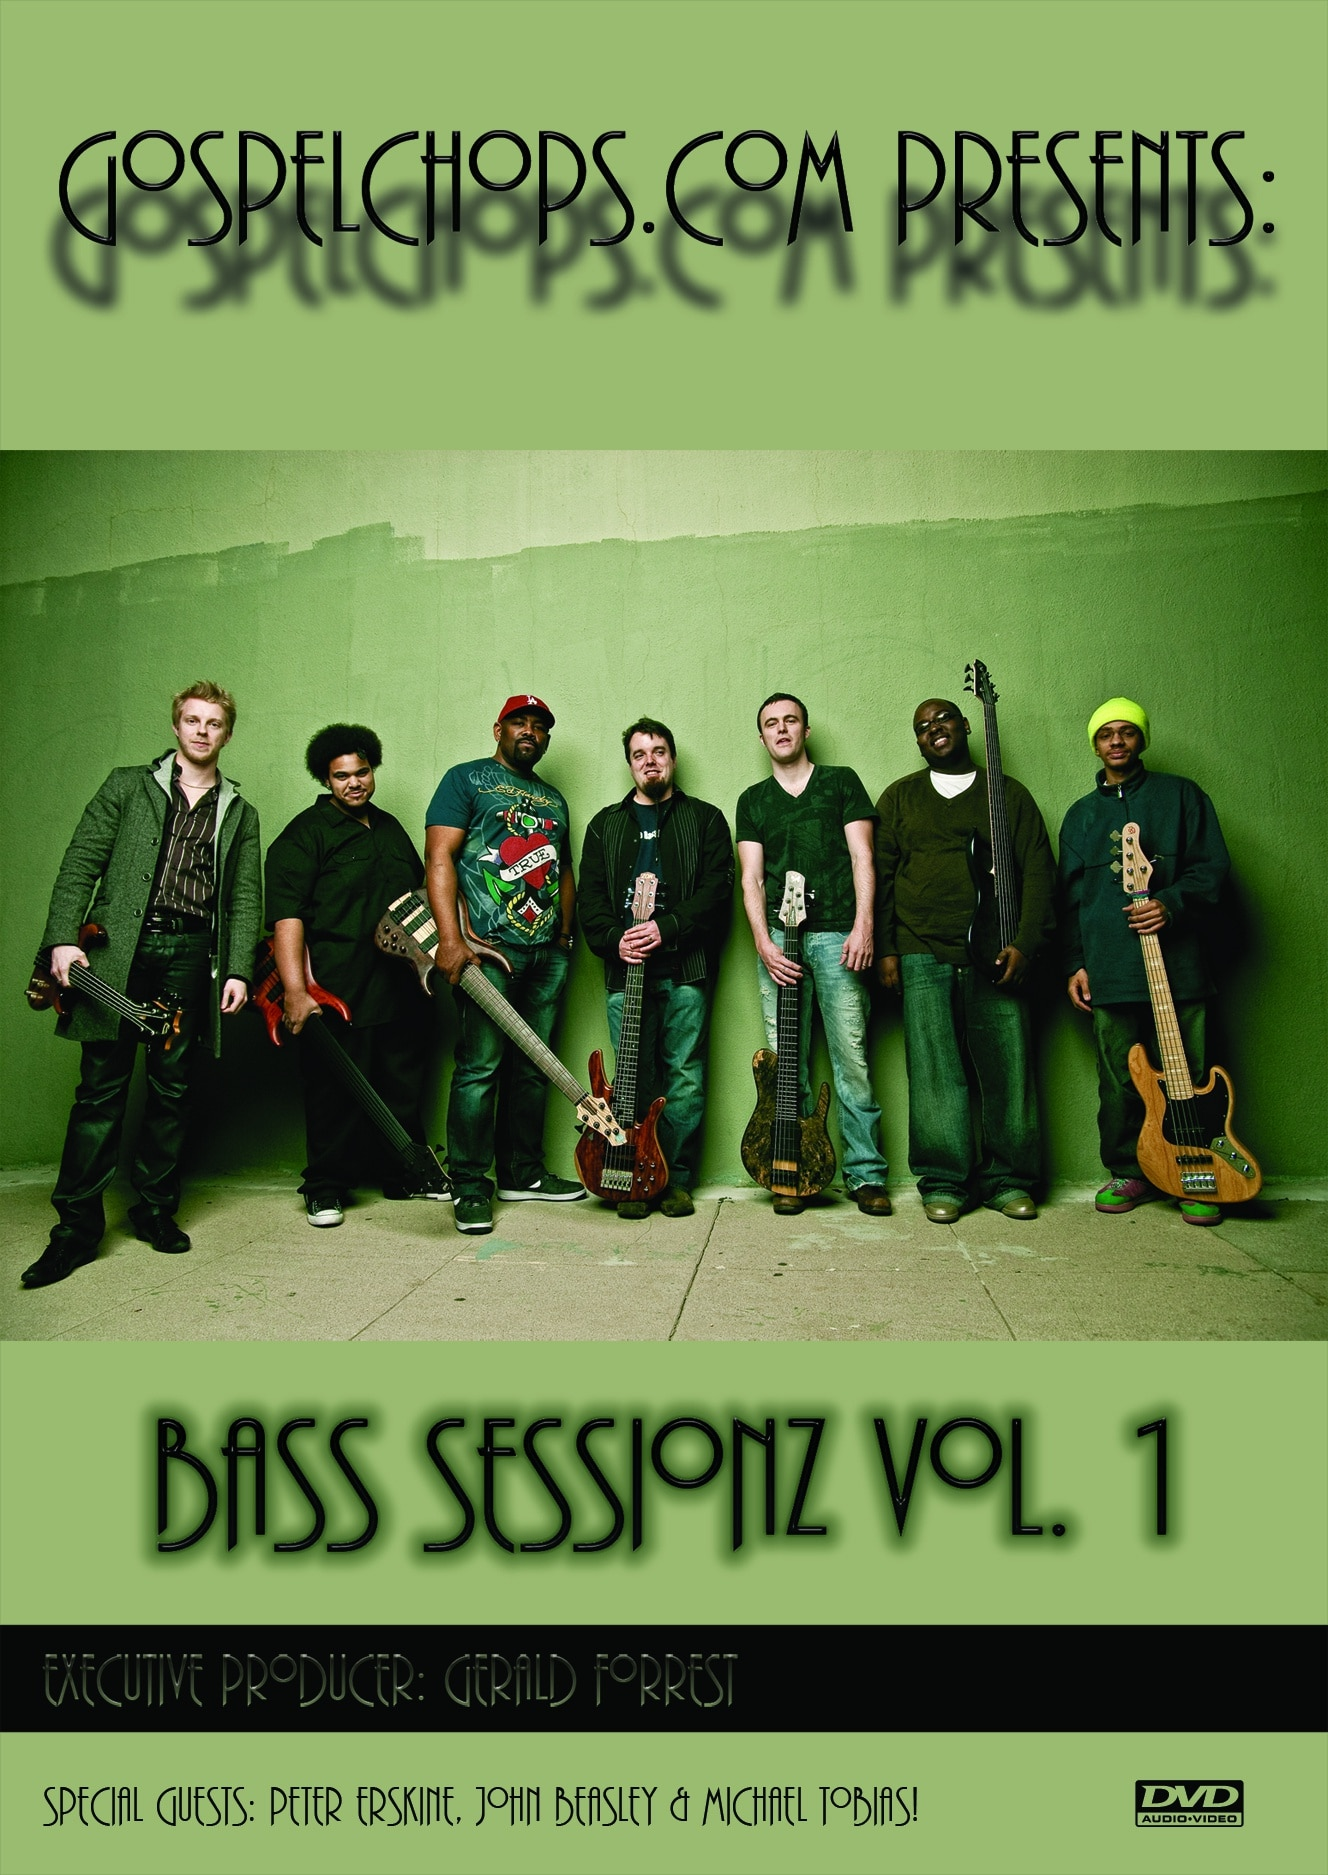 Click to Buy BASS SESSIONZ VOL.1